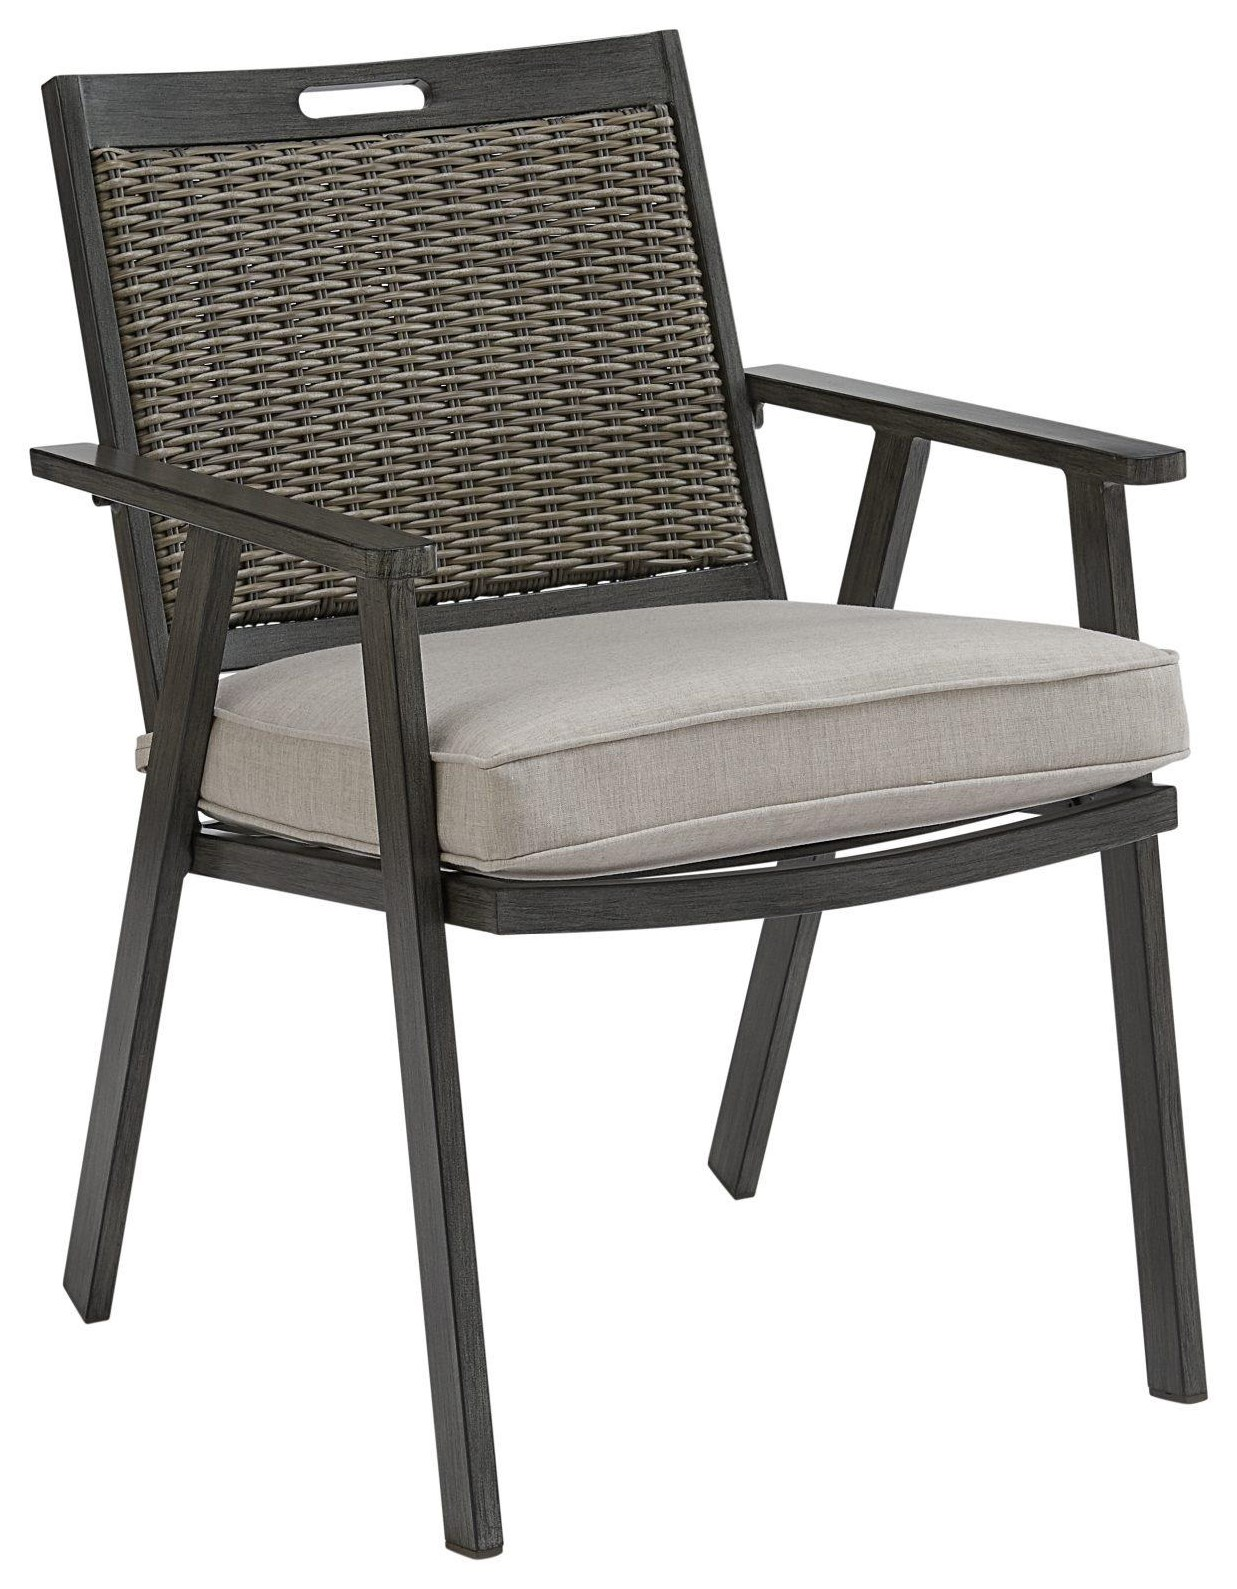 Addison Dining Chair by Apricity Outdoor at Johnny Janosik